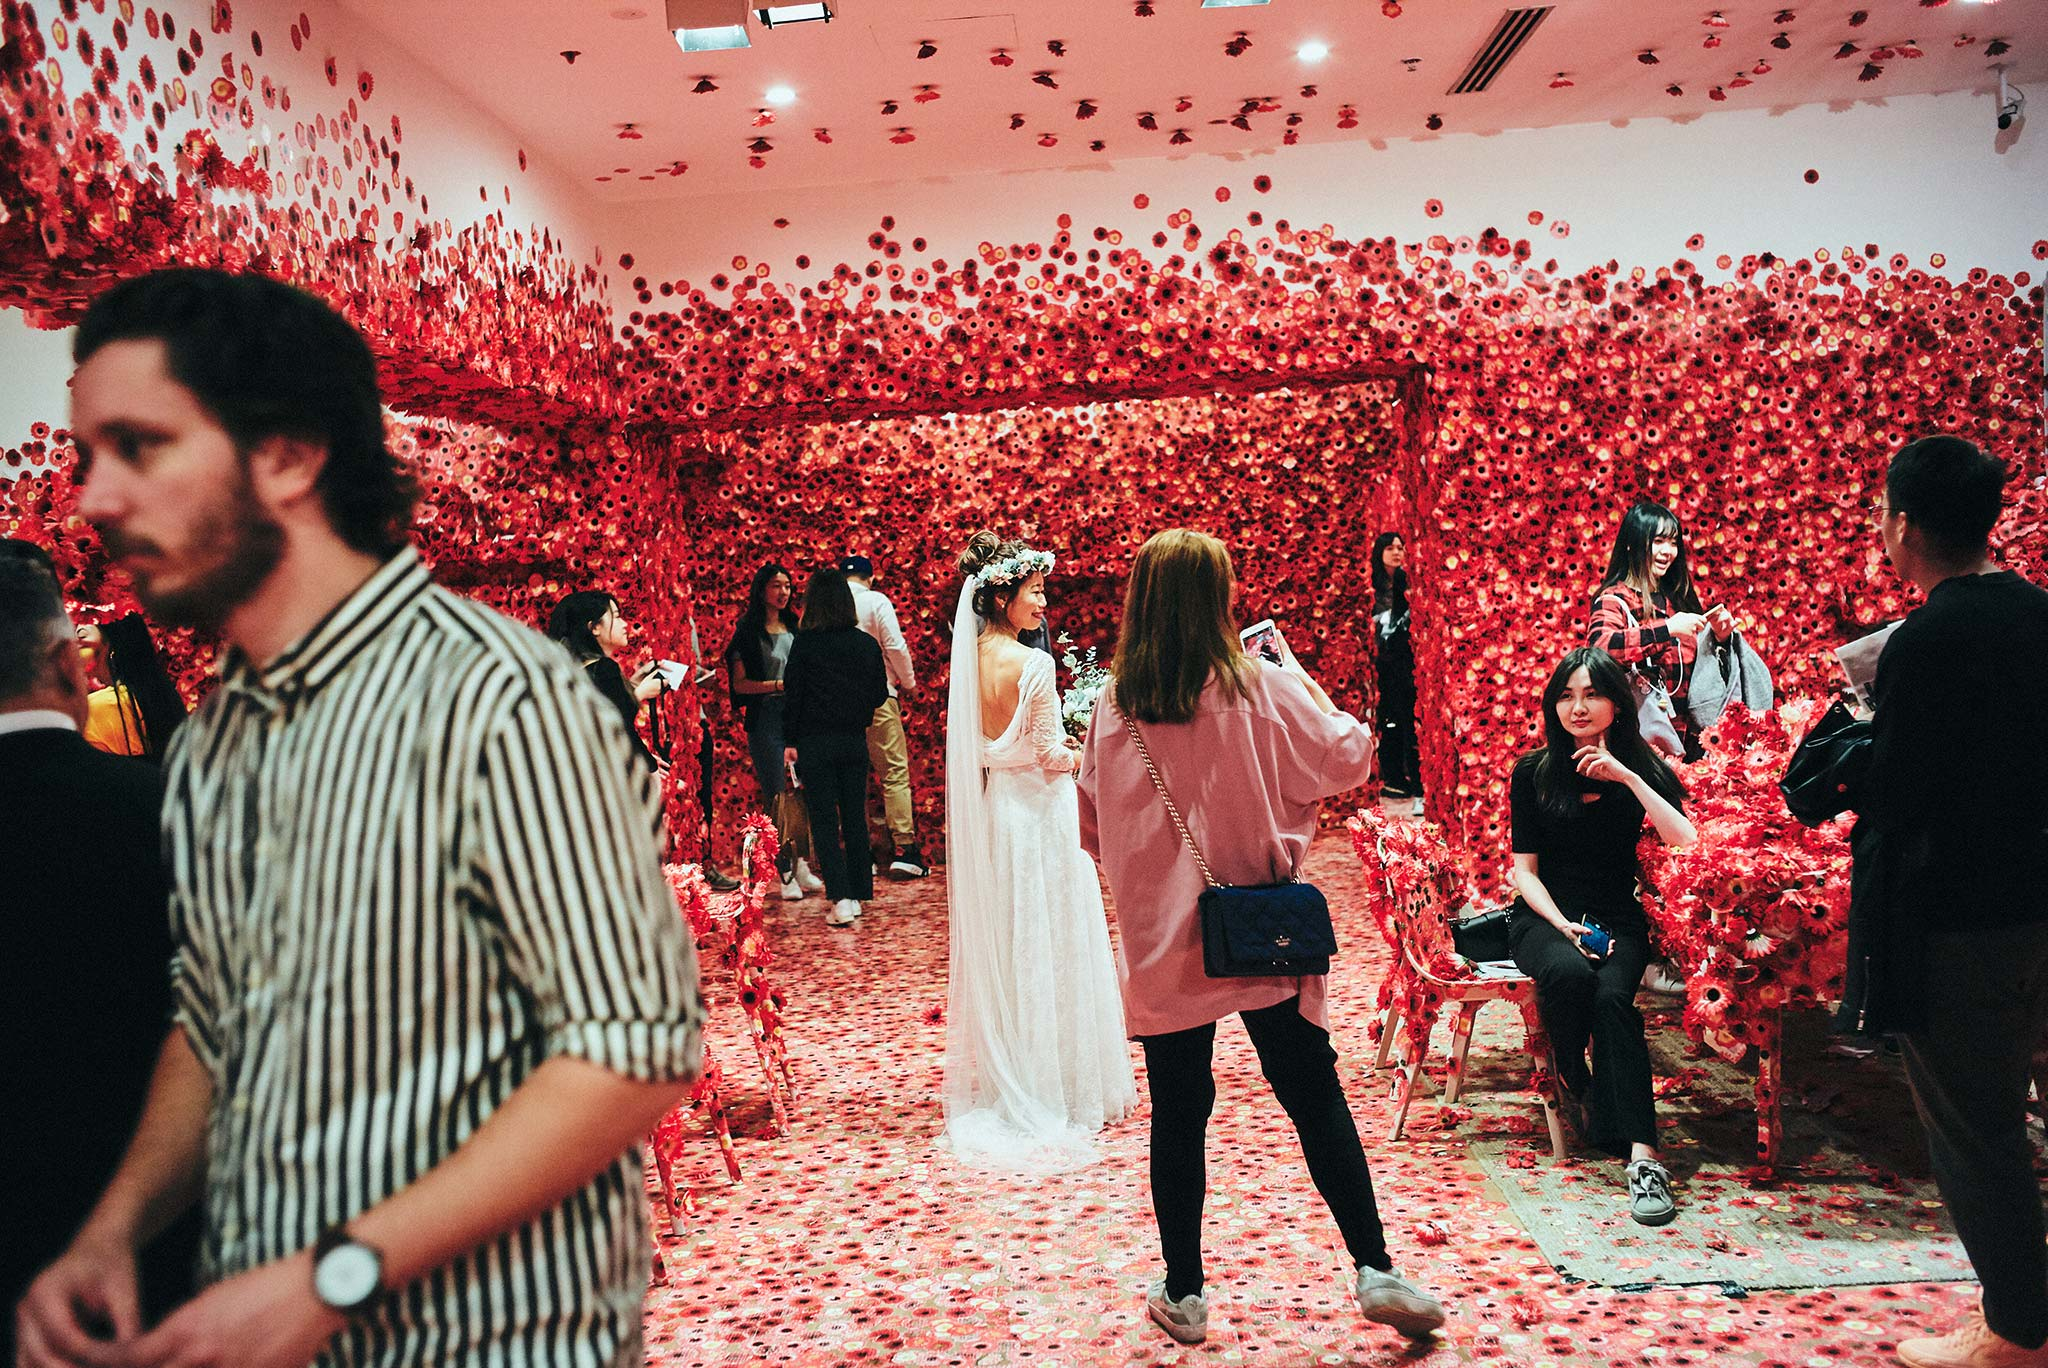 Melbourne-NGV-Triennial-Wedding-yayoi-kusama-flower-room